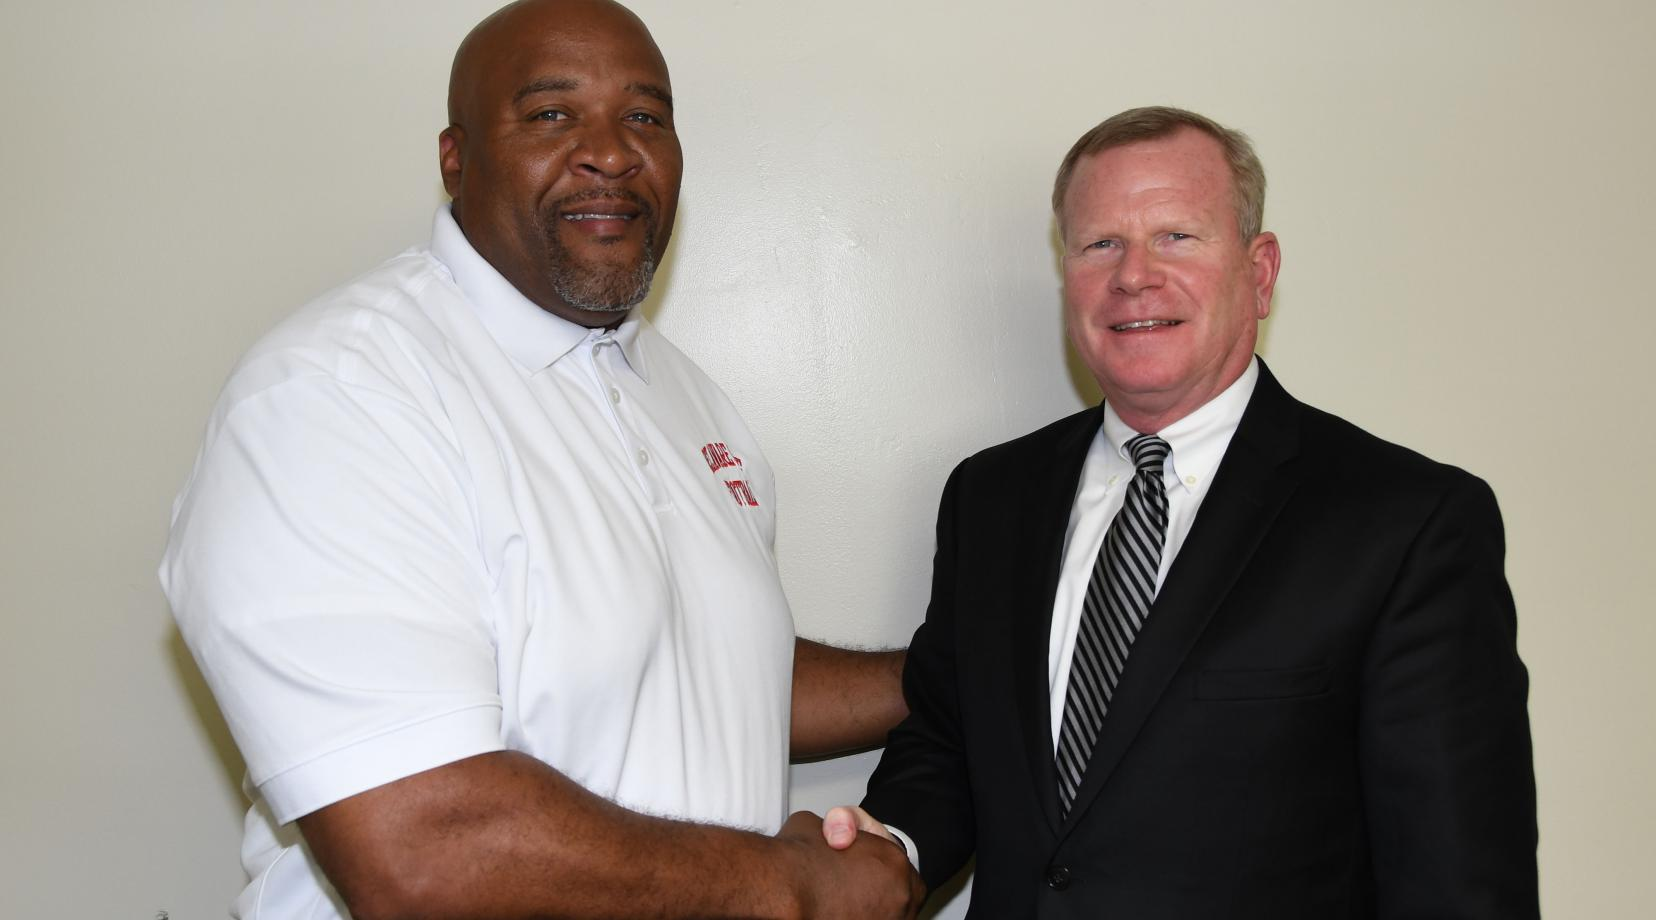 DSU Head Football Coach Rod Milstead welcomes his new boss (r) Dr. D. Scott Gines, who has been newly named the University's Athletic Director.